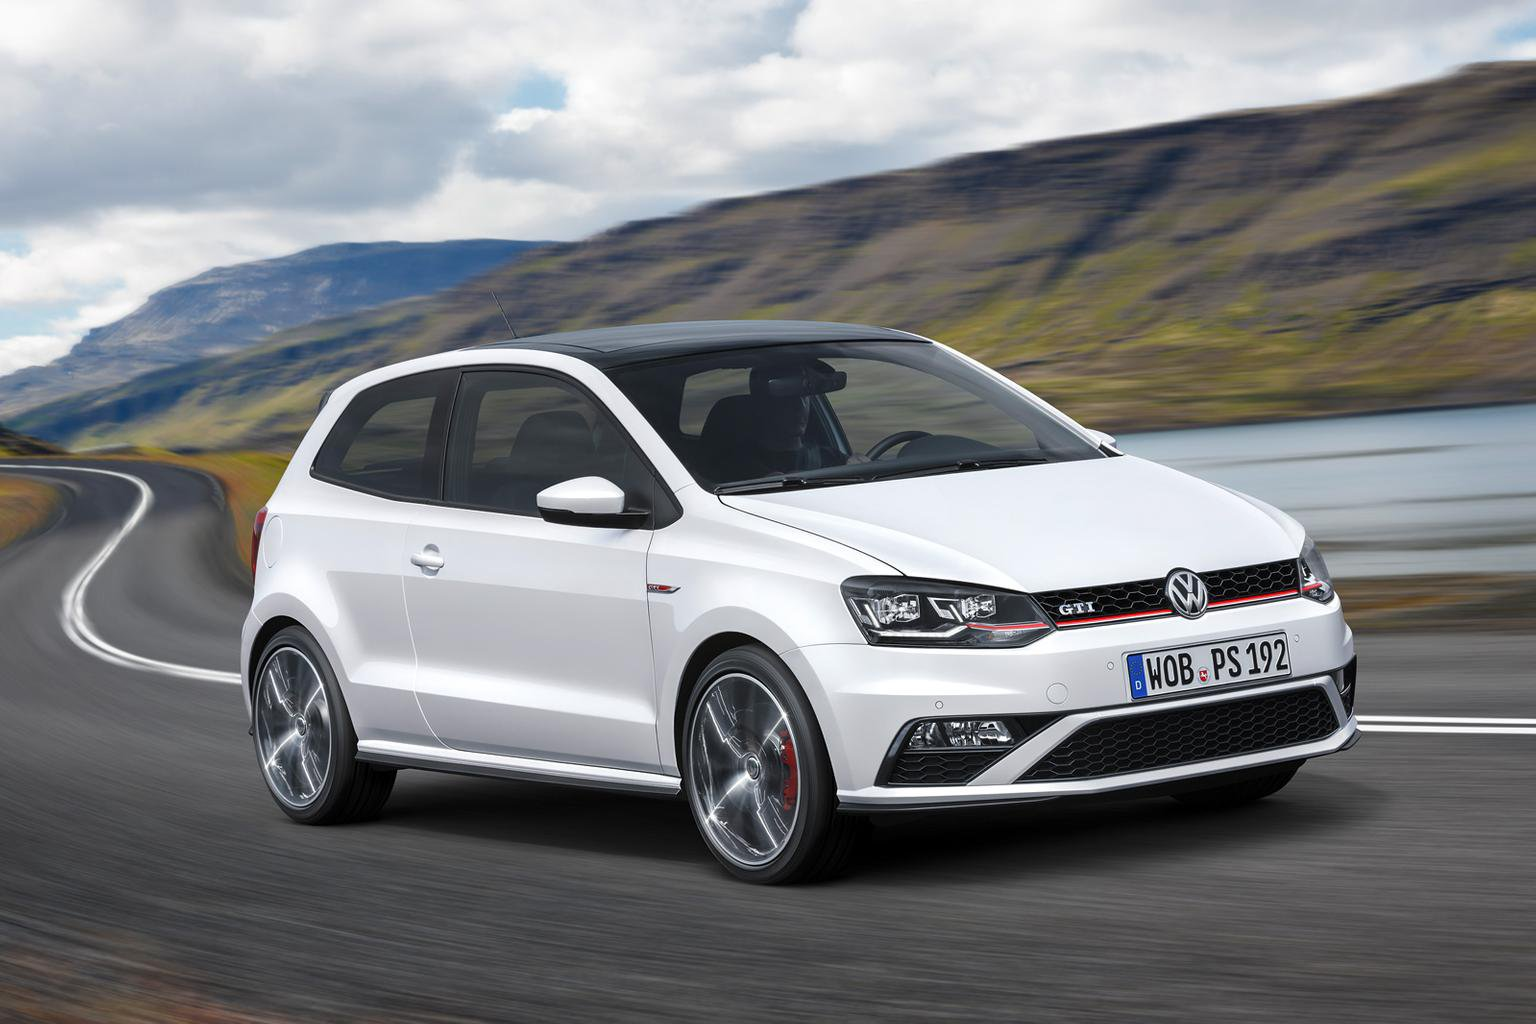 2015 Volkswagen Polo GTI - Pricing, engines and specs